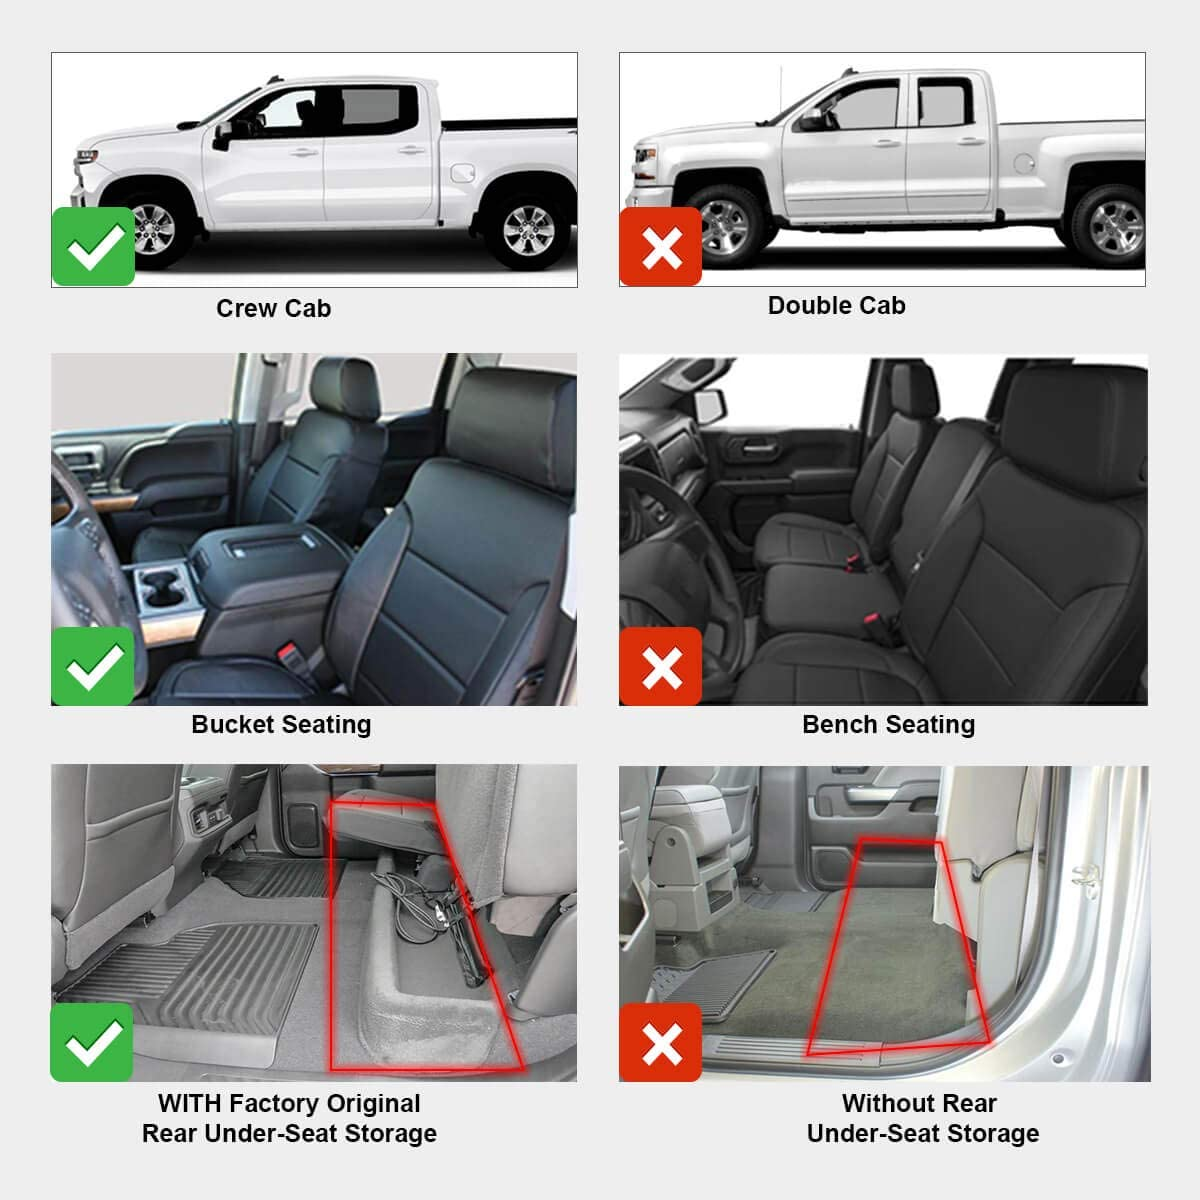 LASFIT Floor Mats Fits for 2019-2020 Chevrolet Silverado 1500 /& GMC Sierra 1500 Crew Cab All Weather Guard Custom Fit TPE Floor Liners Front Bucket Seating /& Rear Seating with Factory Storage Black